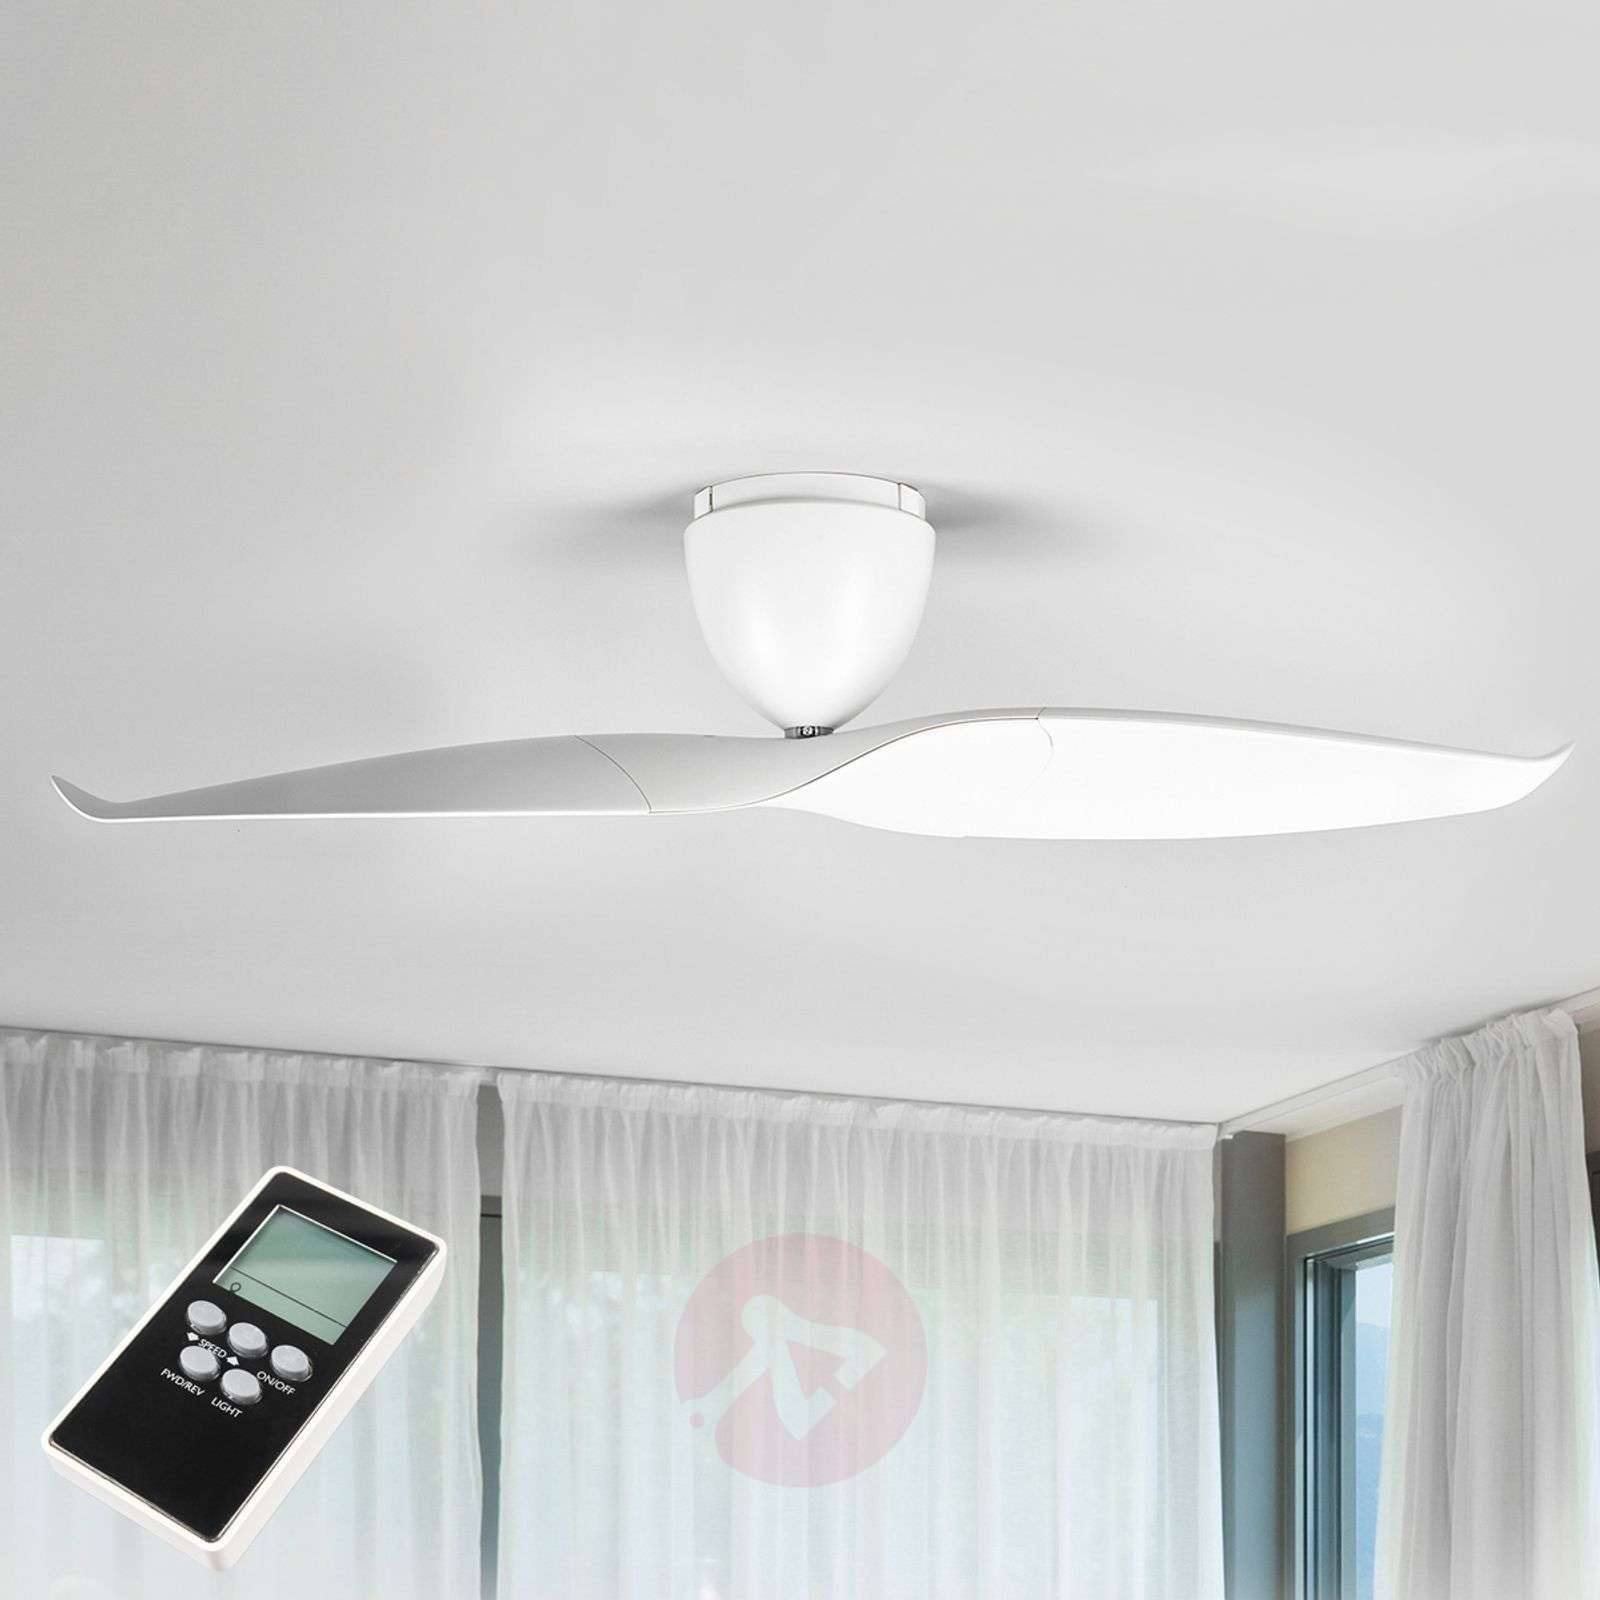 Ceiling fan Wave, white, 126 cm-1068007-04